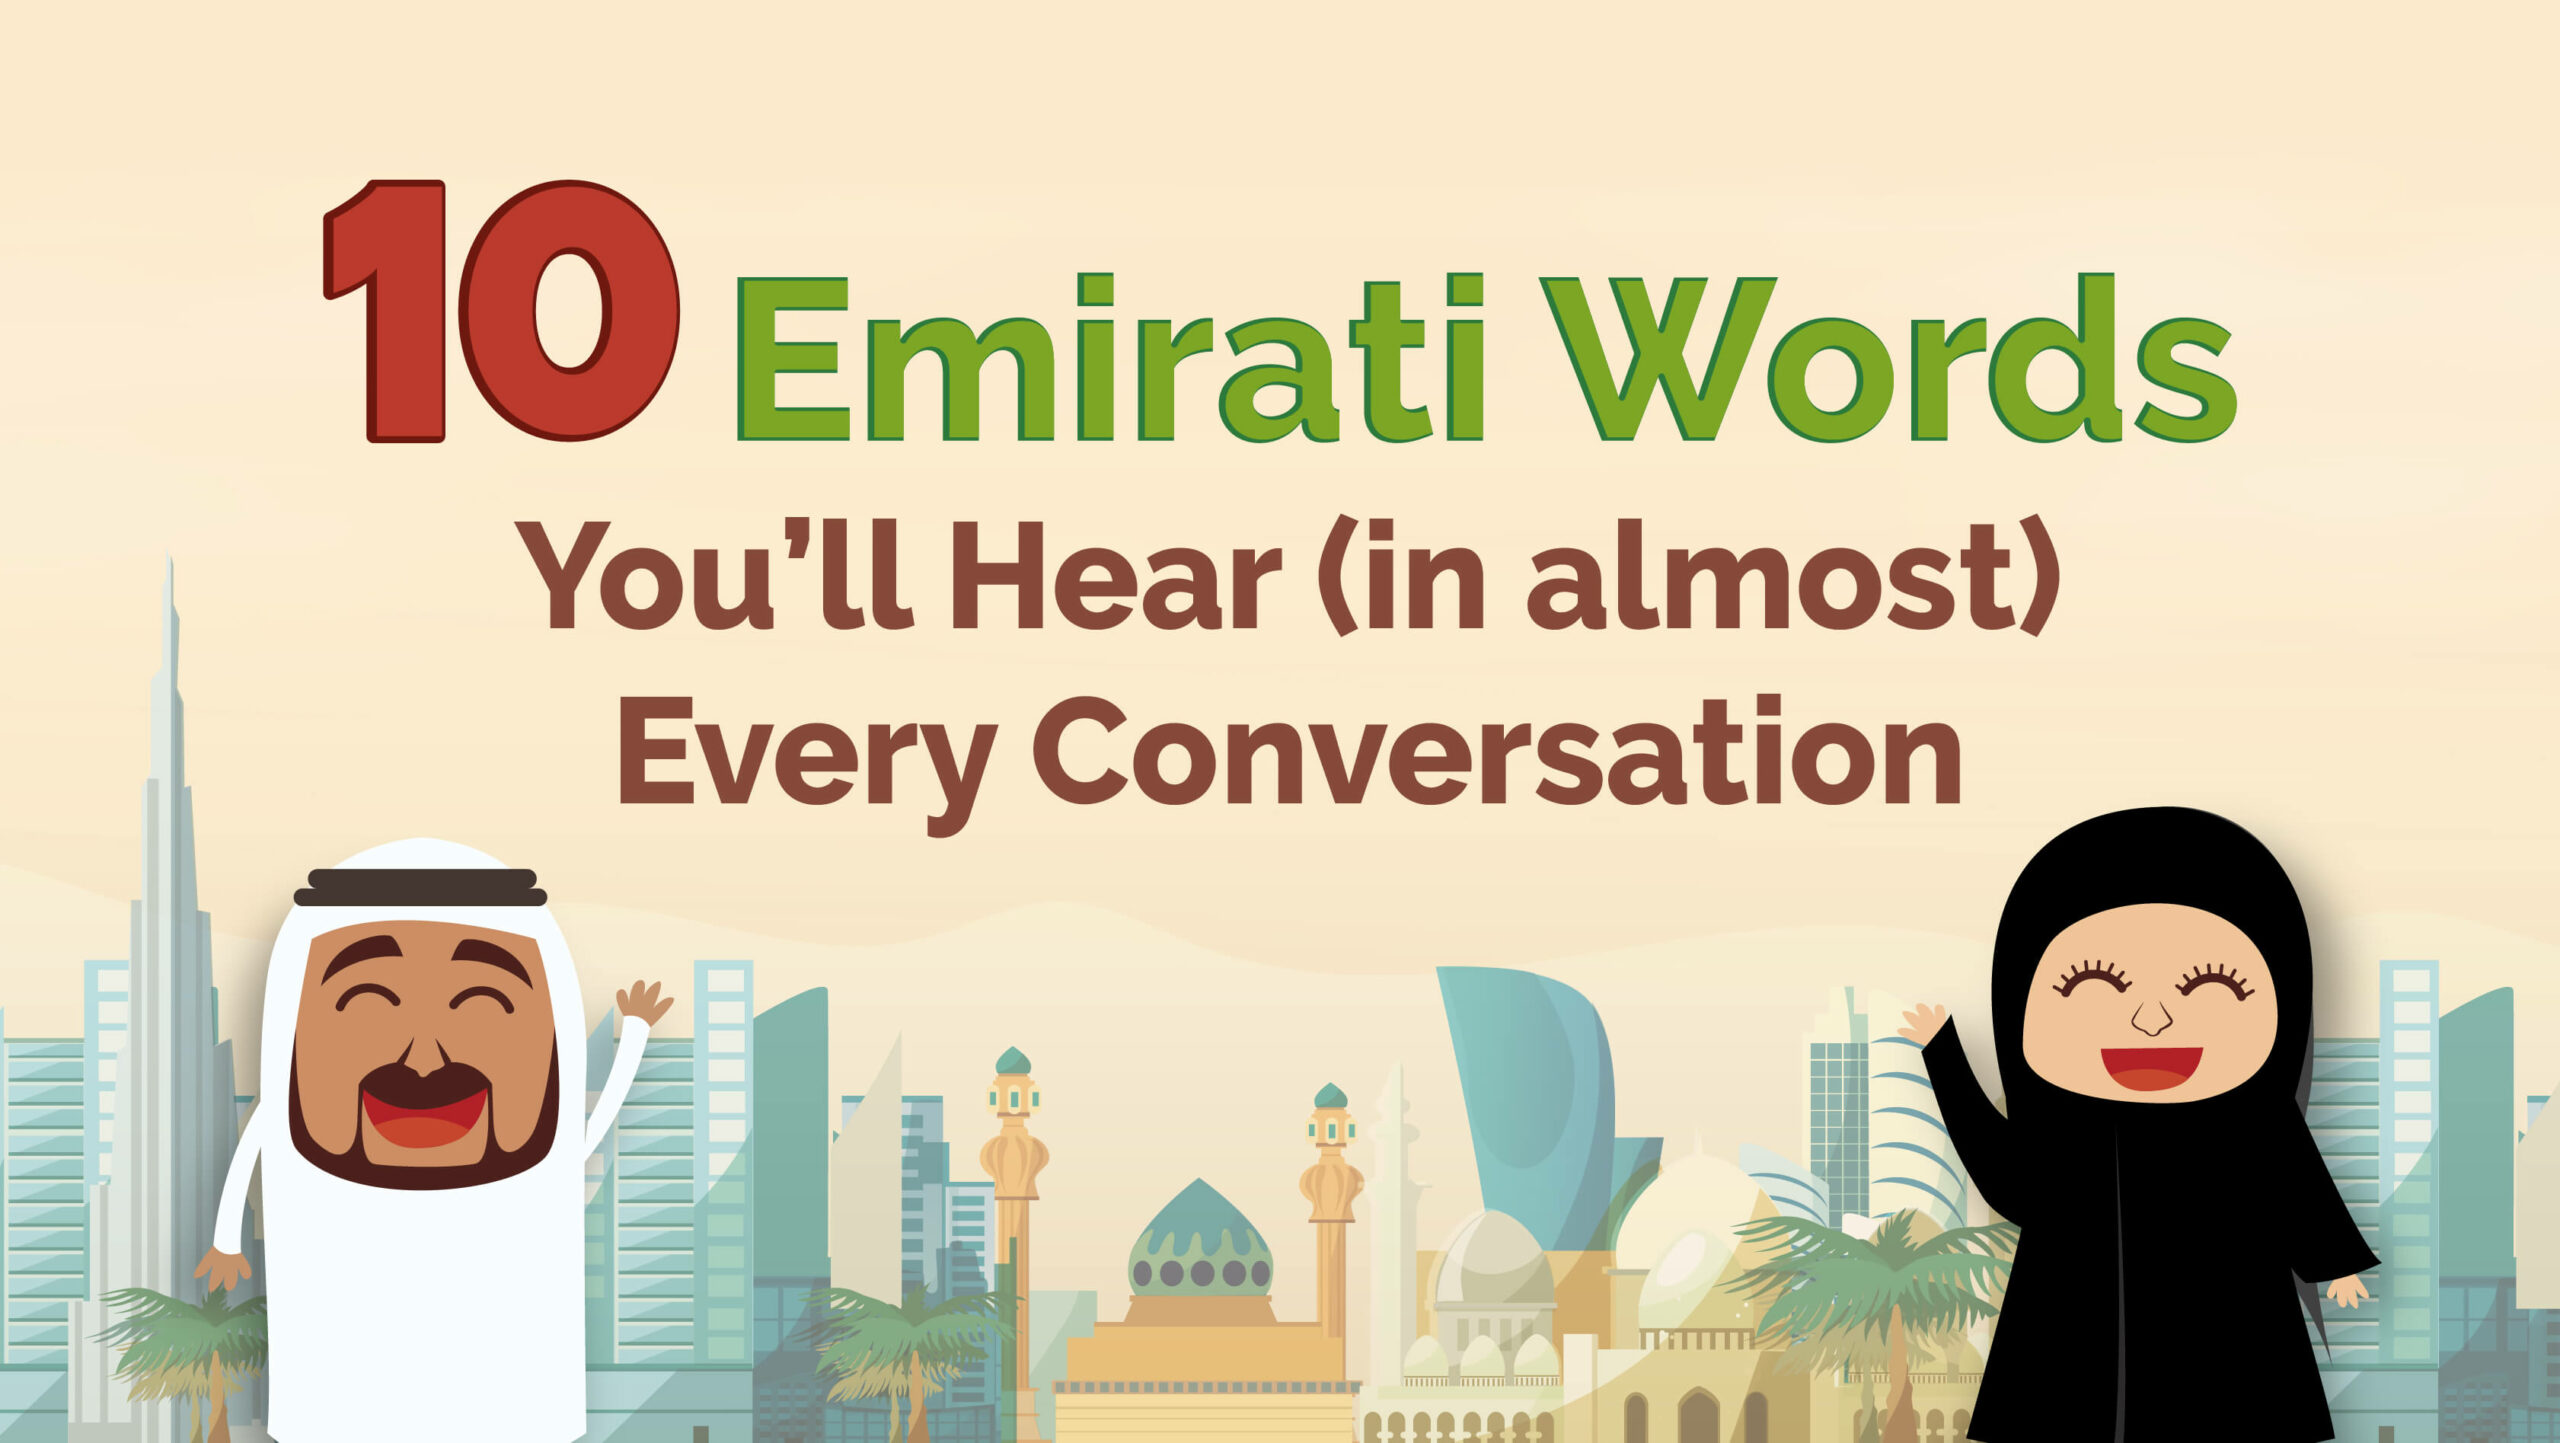 10 EMIRATI WORDS YOU'LL HEAR (IN ALMOST) EVERY CONVERSATION